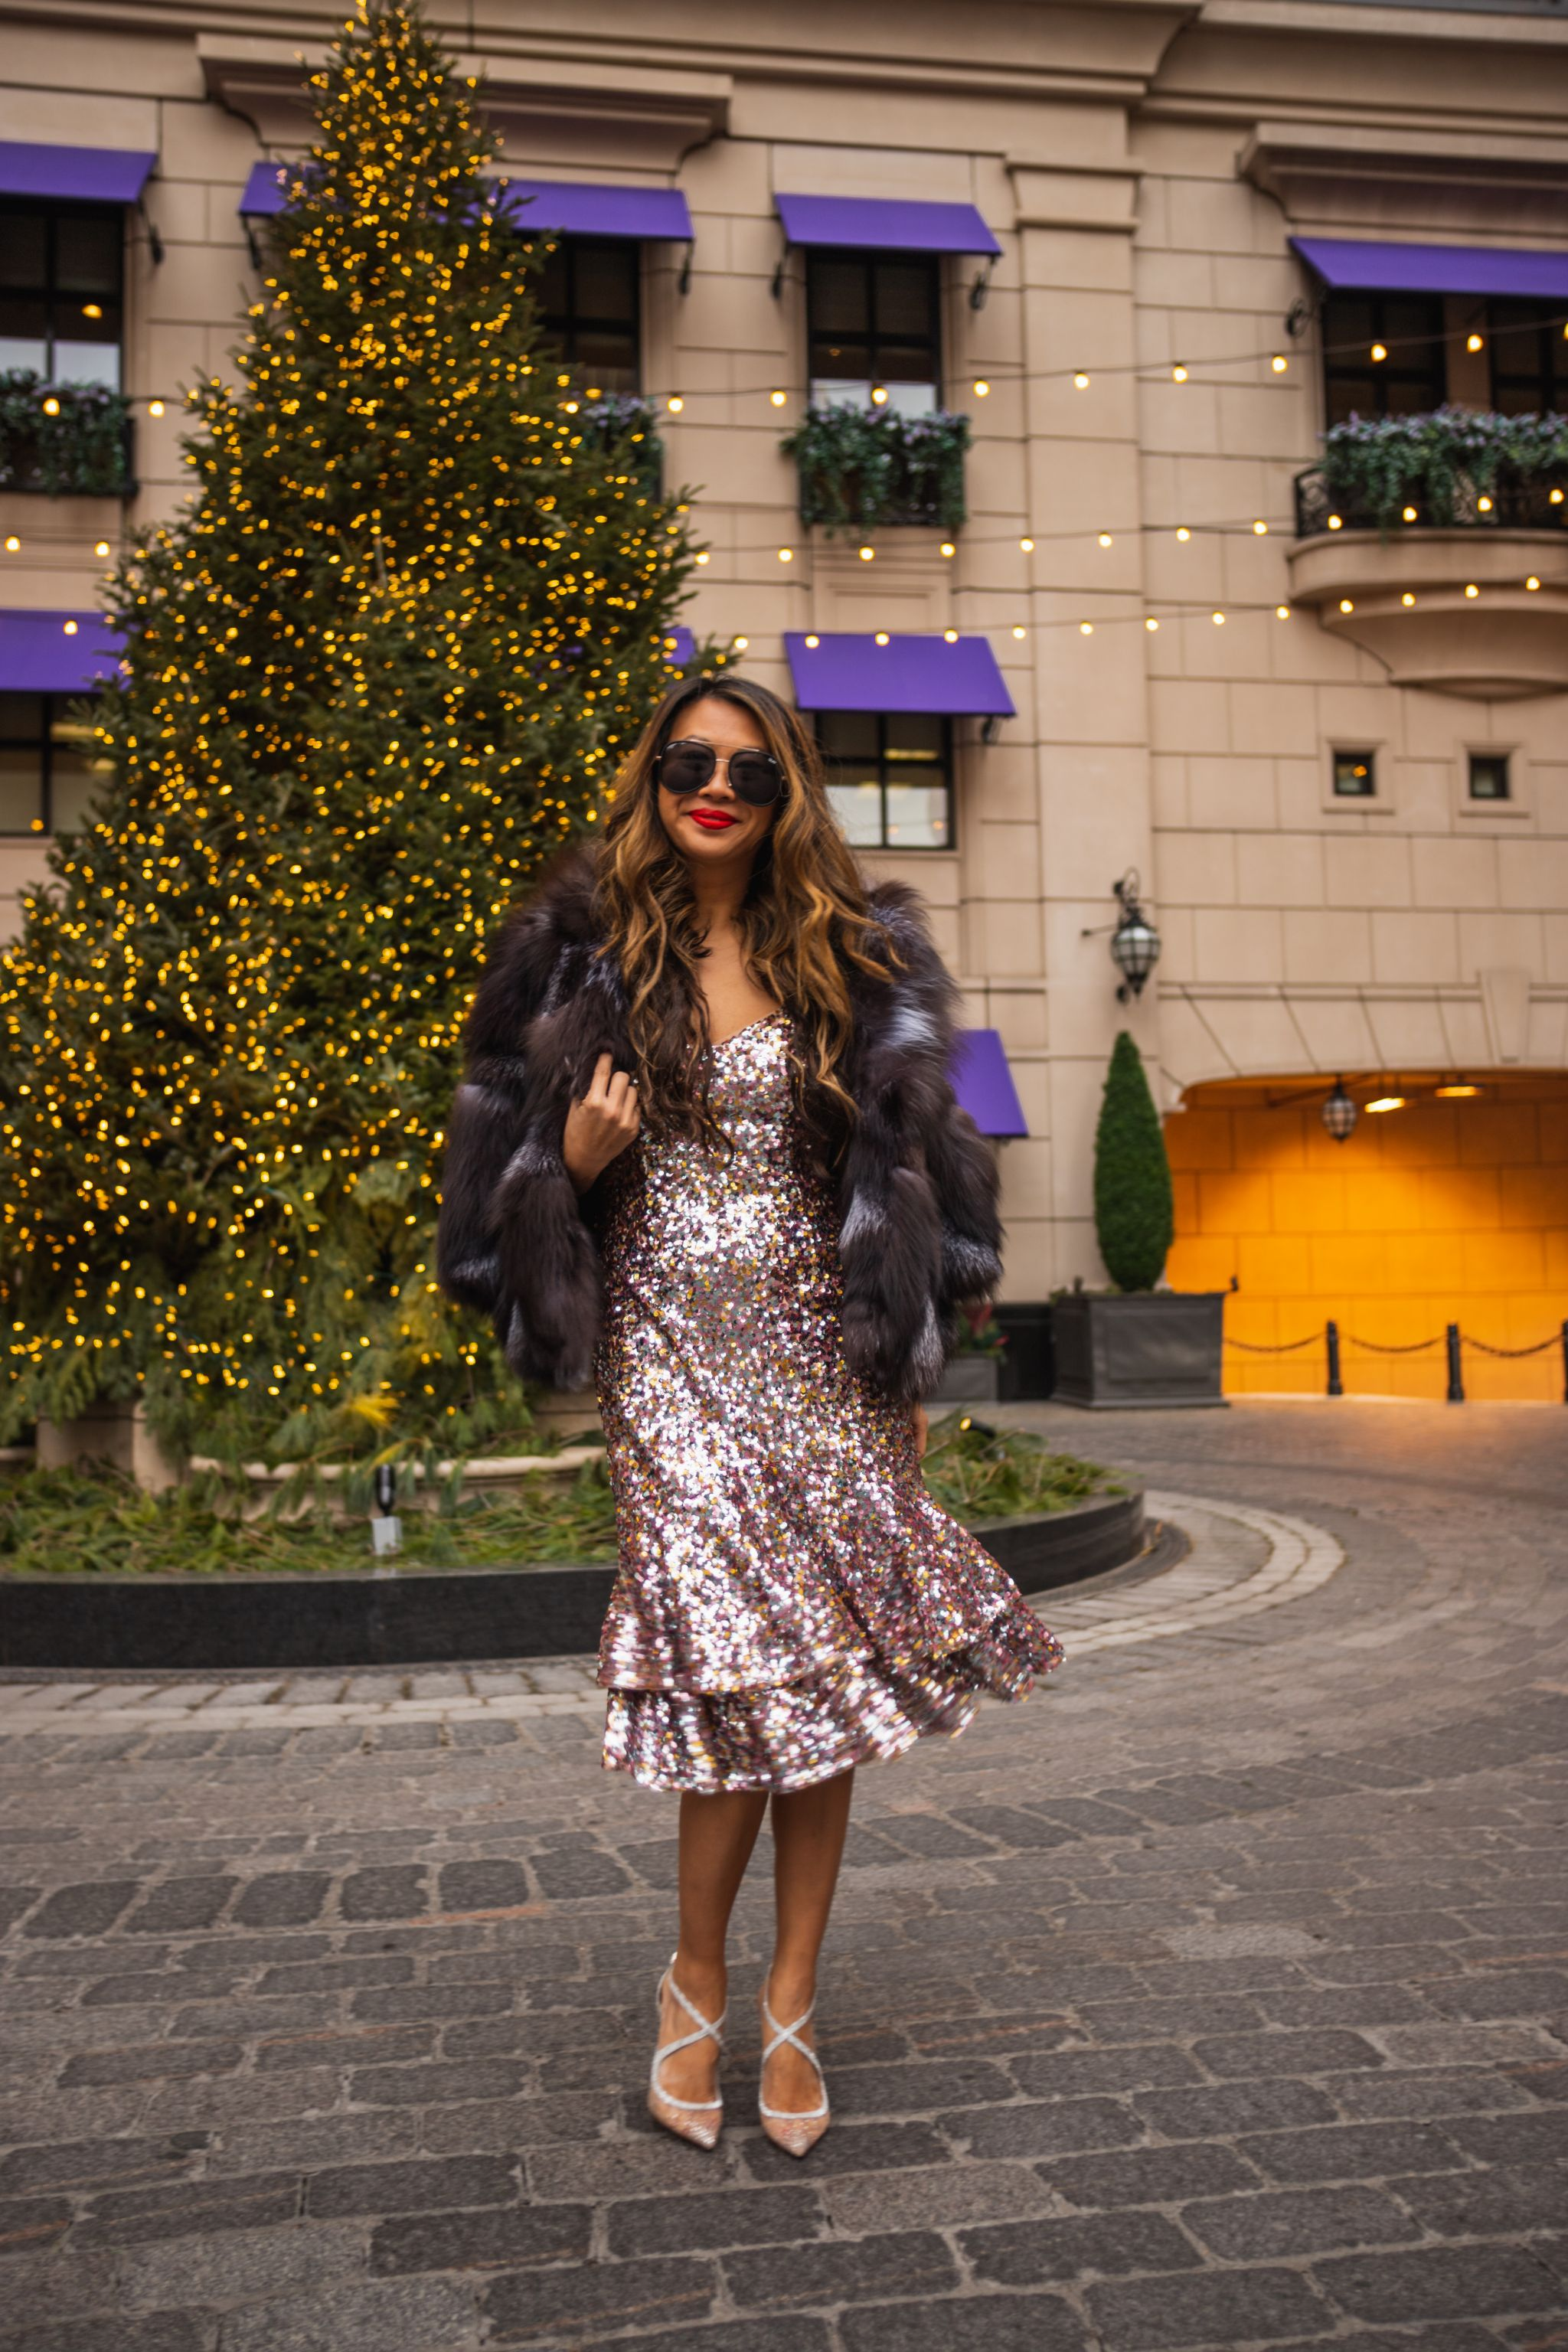 Ruffle Hem sequin midi dress, Adrianna Papell sequin dress, new years eve dress, best sequin dress, waldorf astoria chicago, jennifer worman